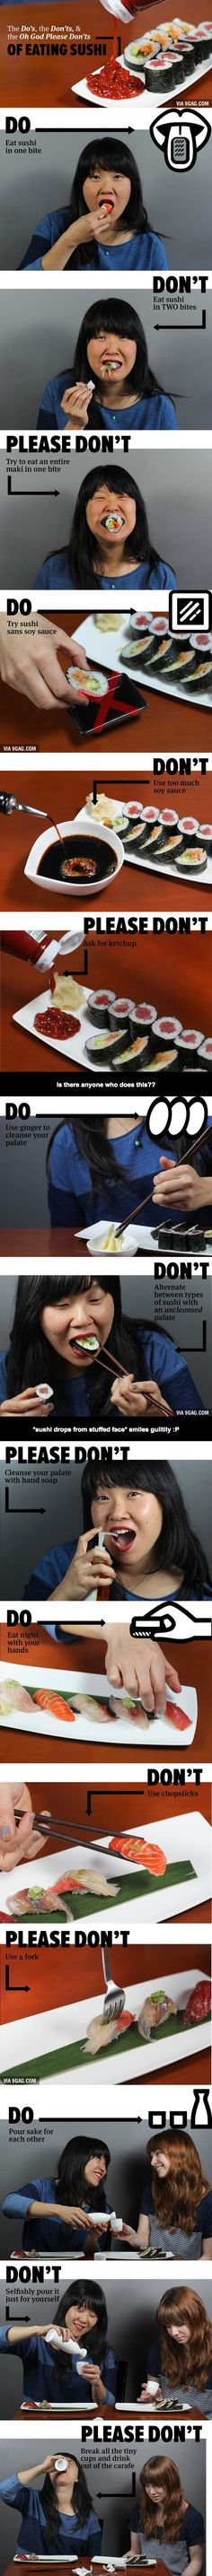 The Do's, The Don'ts, And The Oh God Please Don'ts Of Eating Sushi. I did not know 1 or 2 of these :/